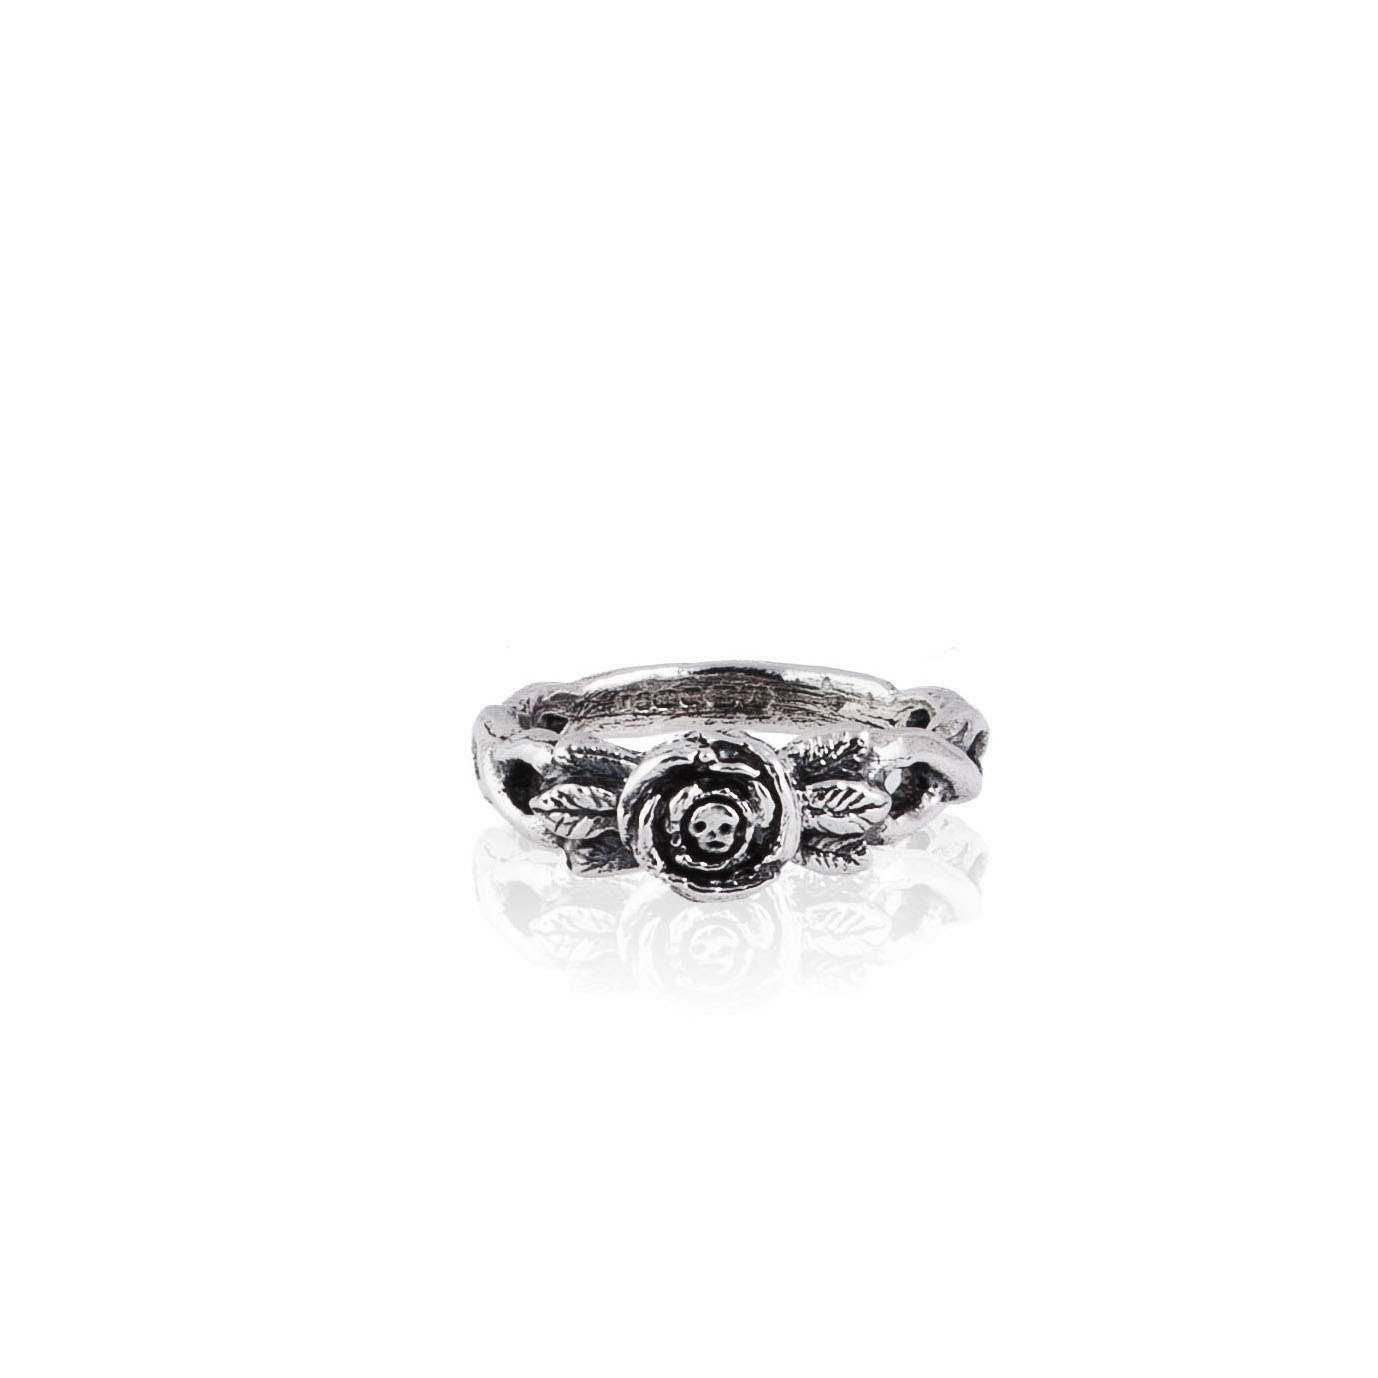 Momocreatura skull in rose silver rings.jpg